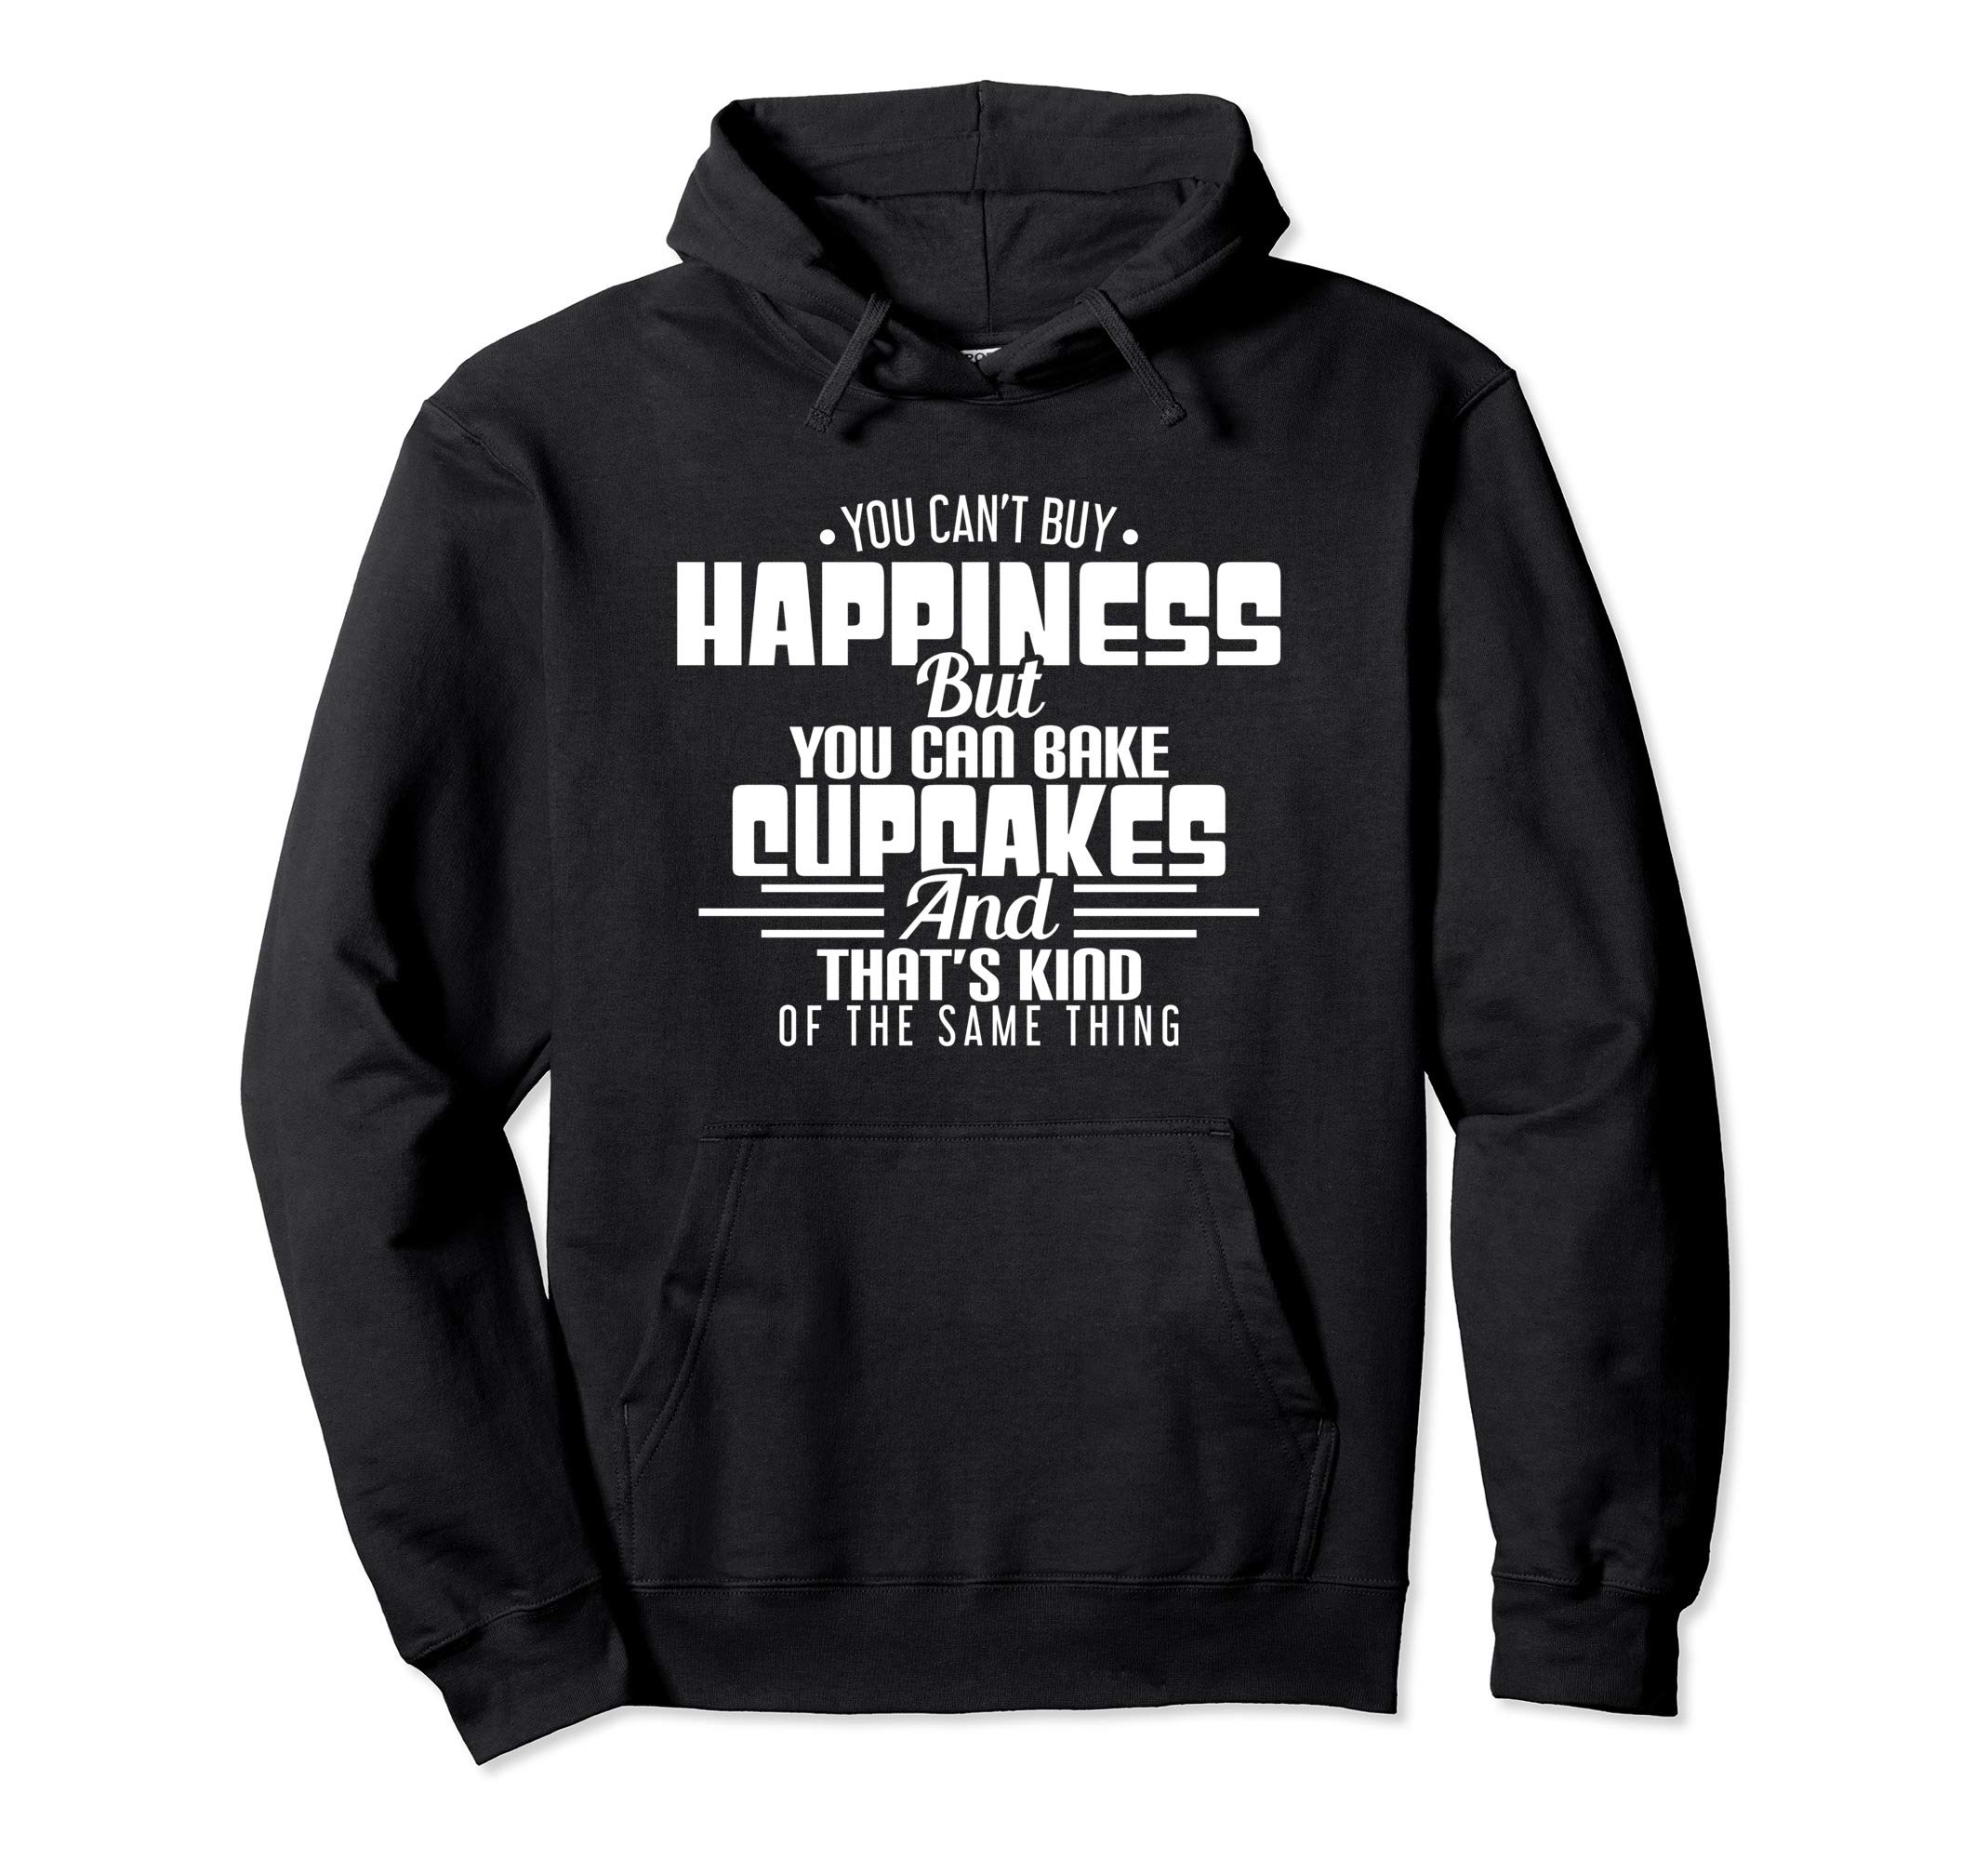 Funny Cupcake Baker Can't Buy Happiness Cute Gift Attire by Cupcake Baker Happiness is Baking Design